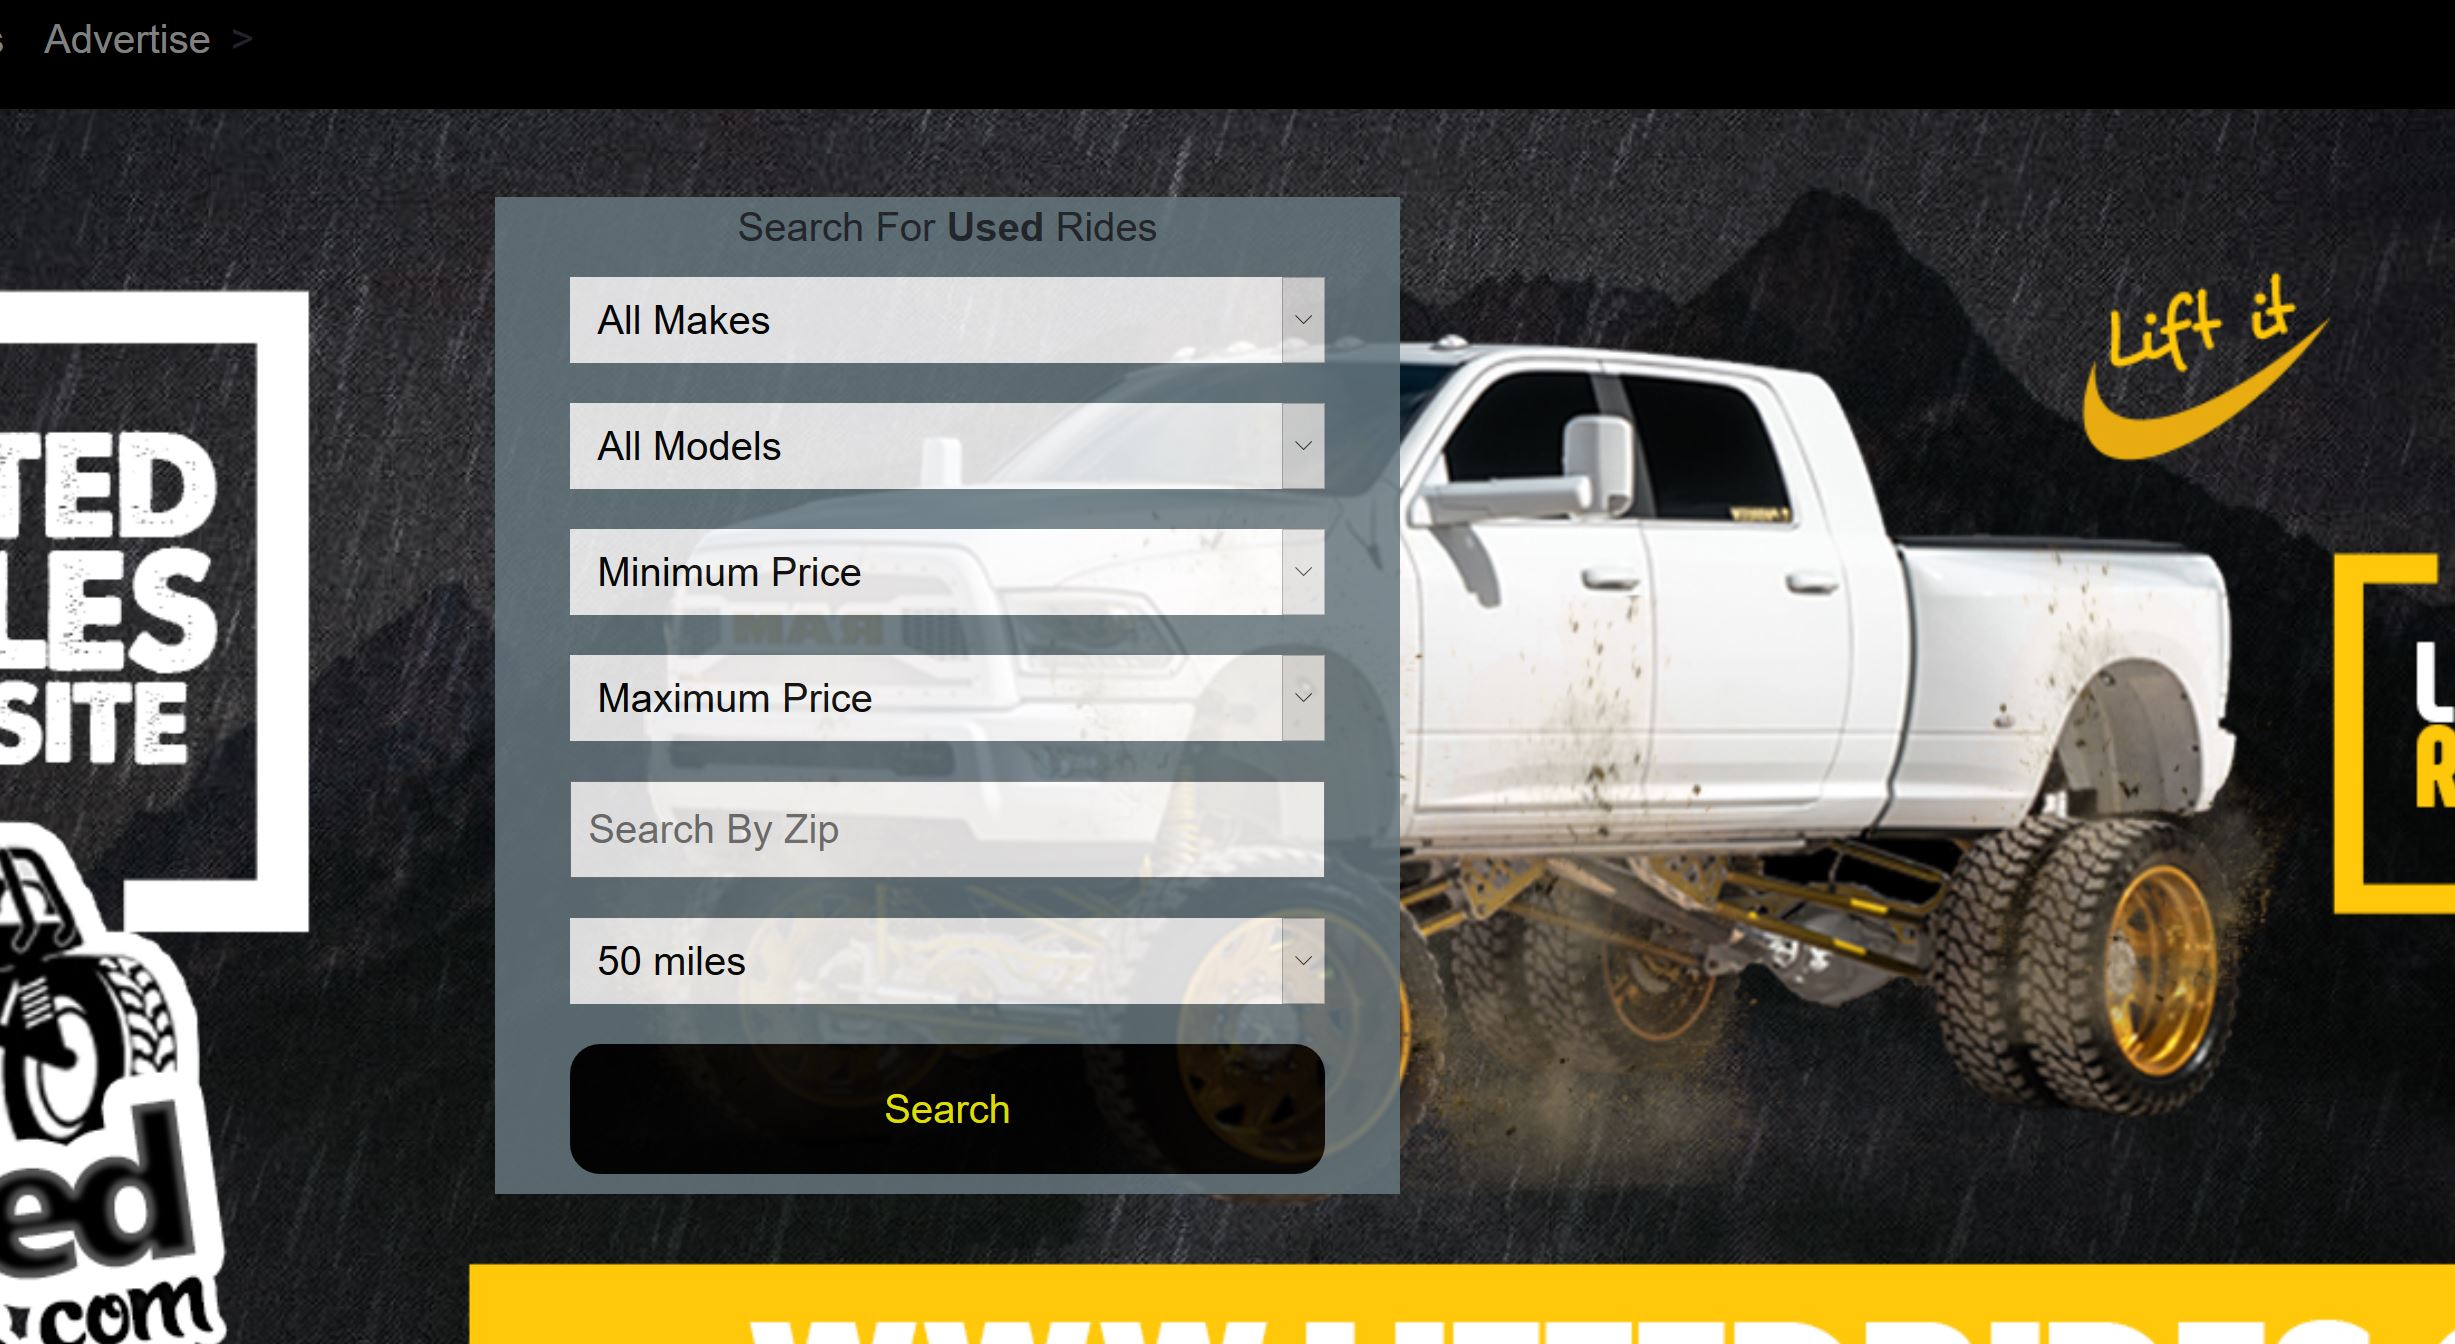 Website for marketing vehicles and dealers